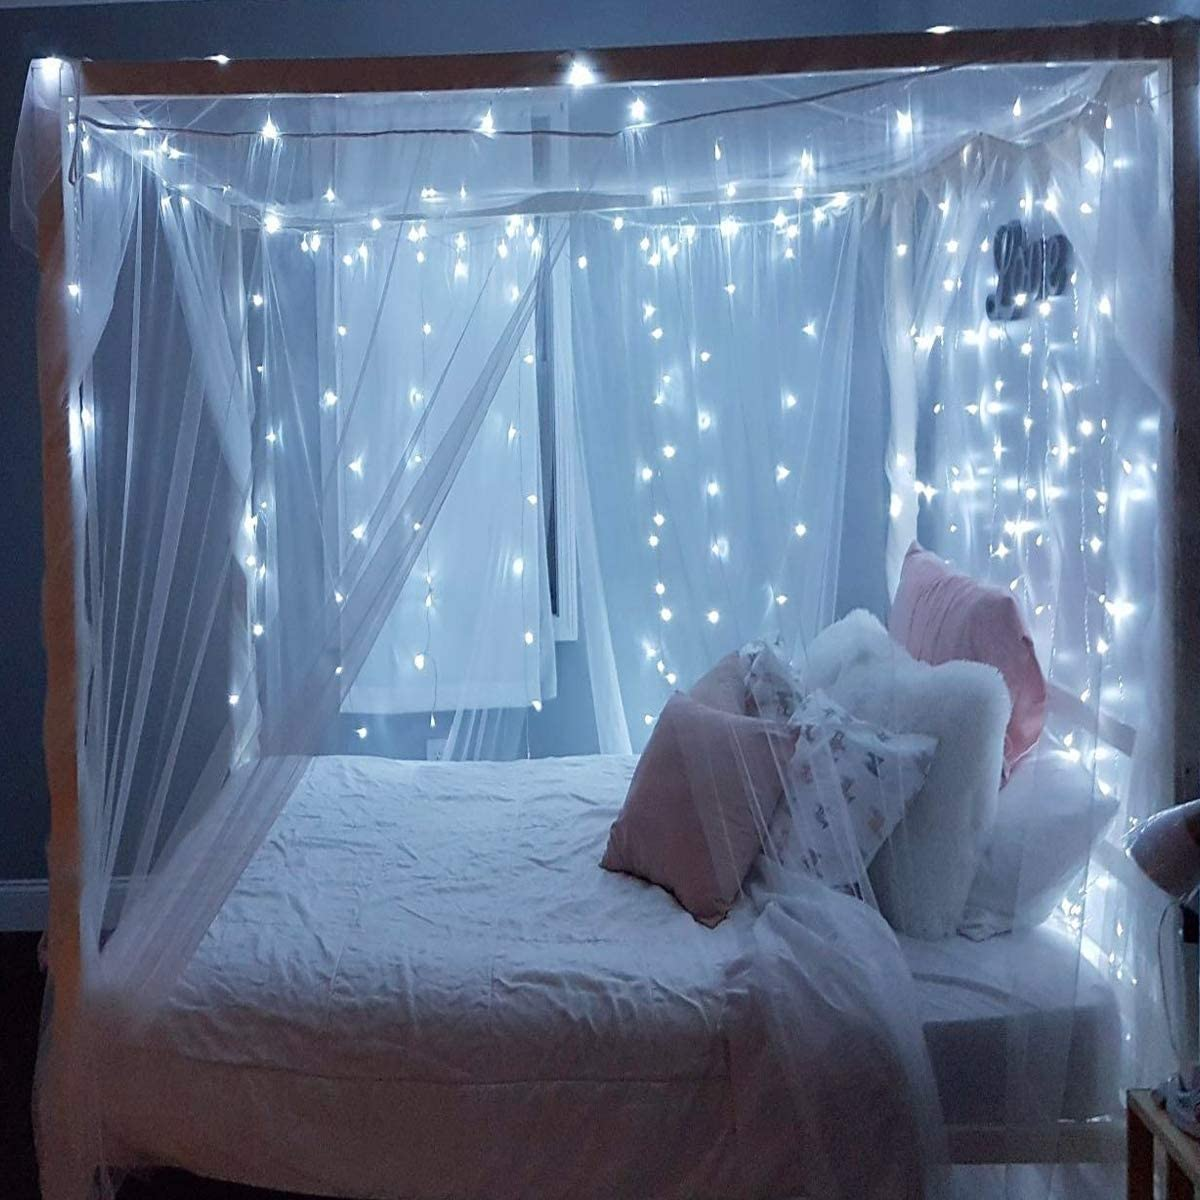 Remote warmwhite DLIUZ UL Safe 300 LED 9.8FT Linkable Curtain Lights Icicle Lights Fairy String Lights with 8 Modes for Christmas Wedding Party Family Patio Lawn Decoration